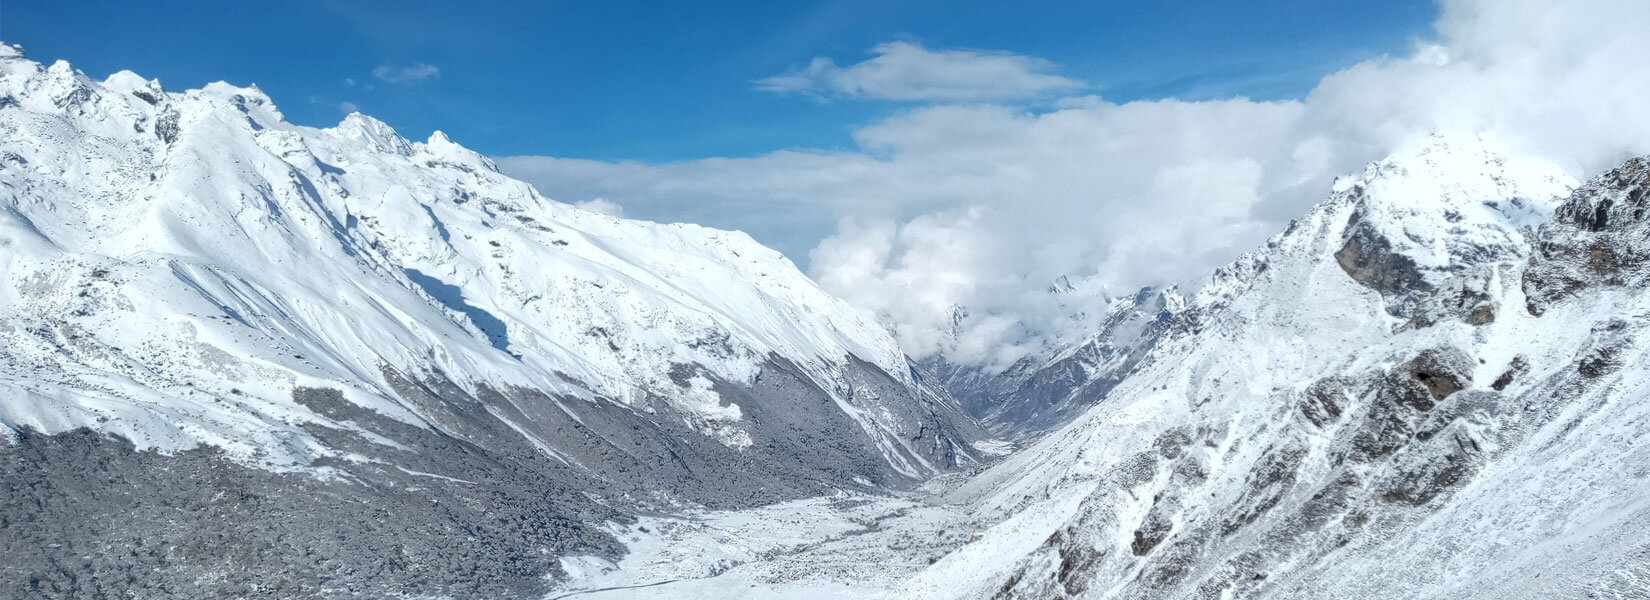 Short Langtang Valley Trek